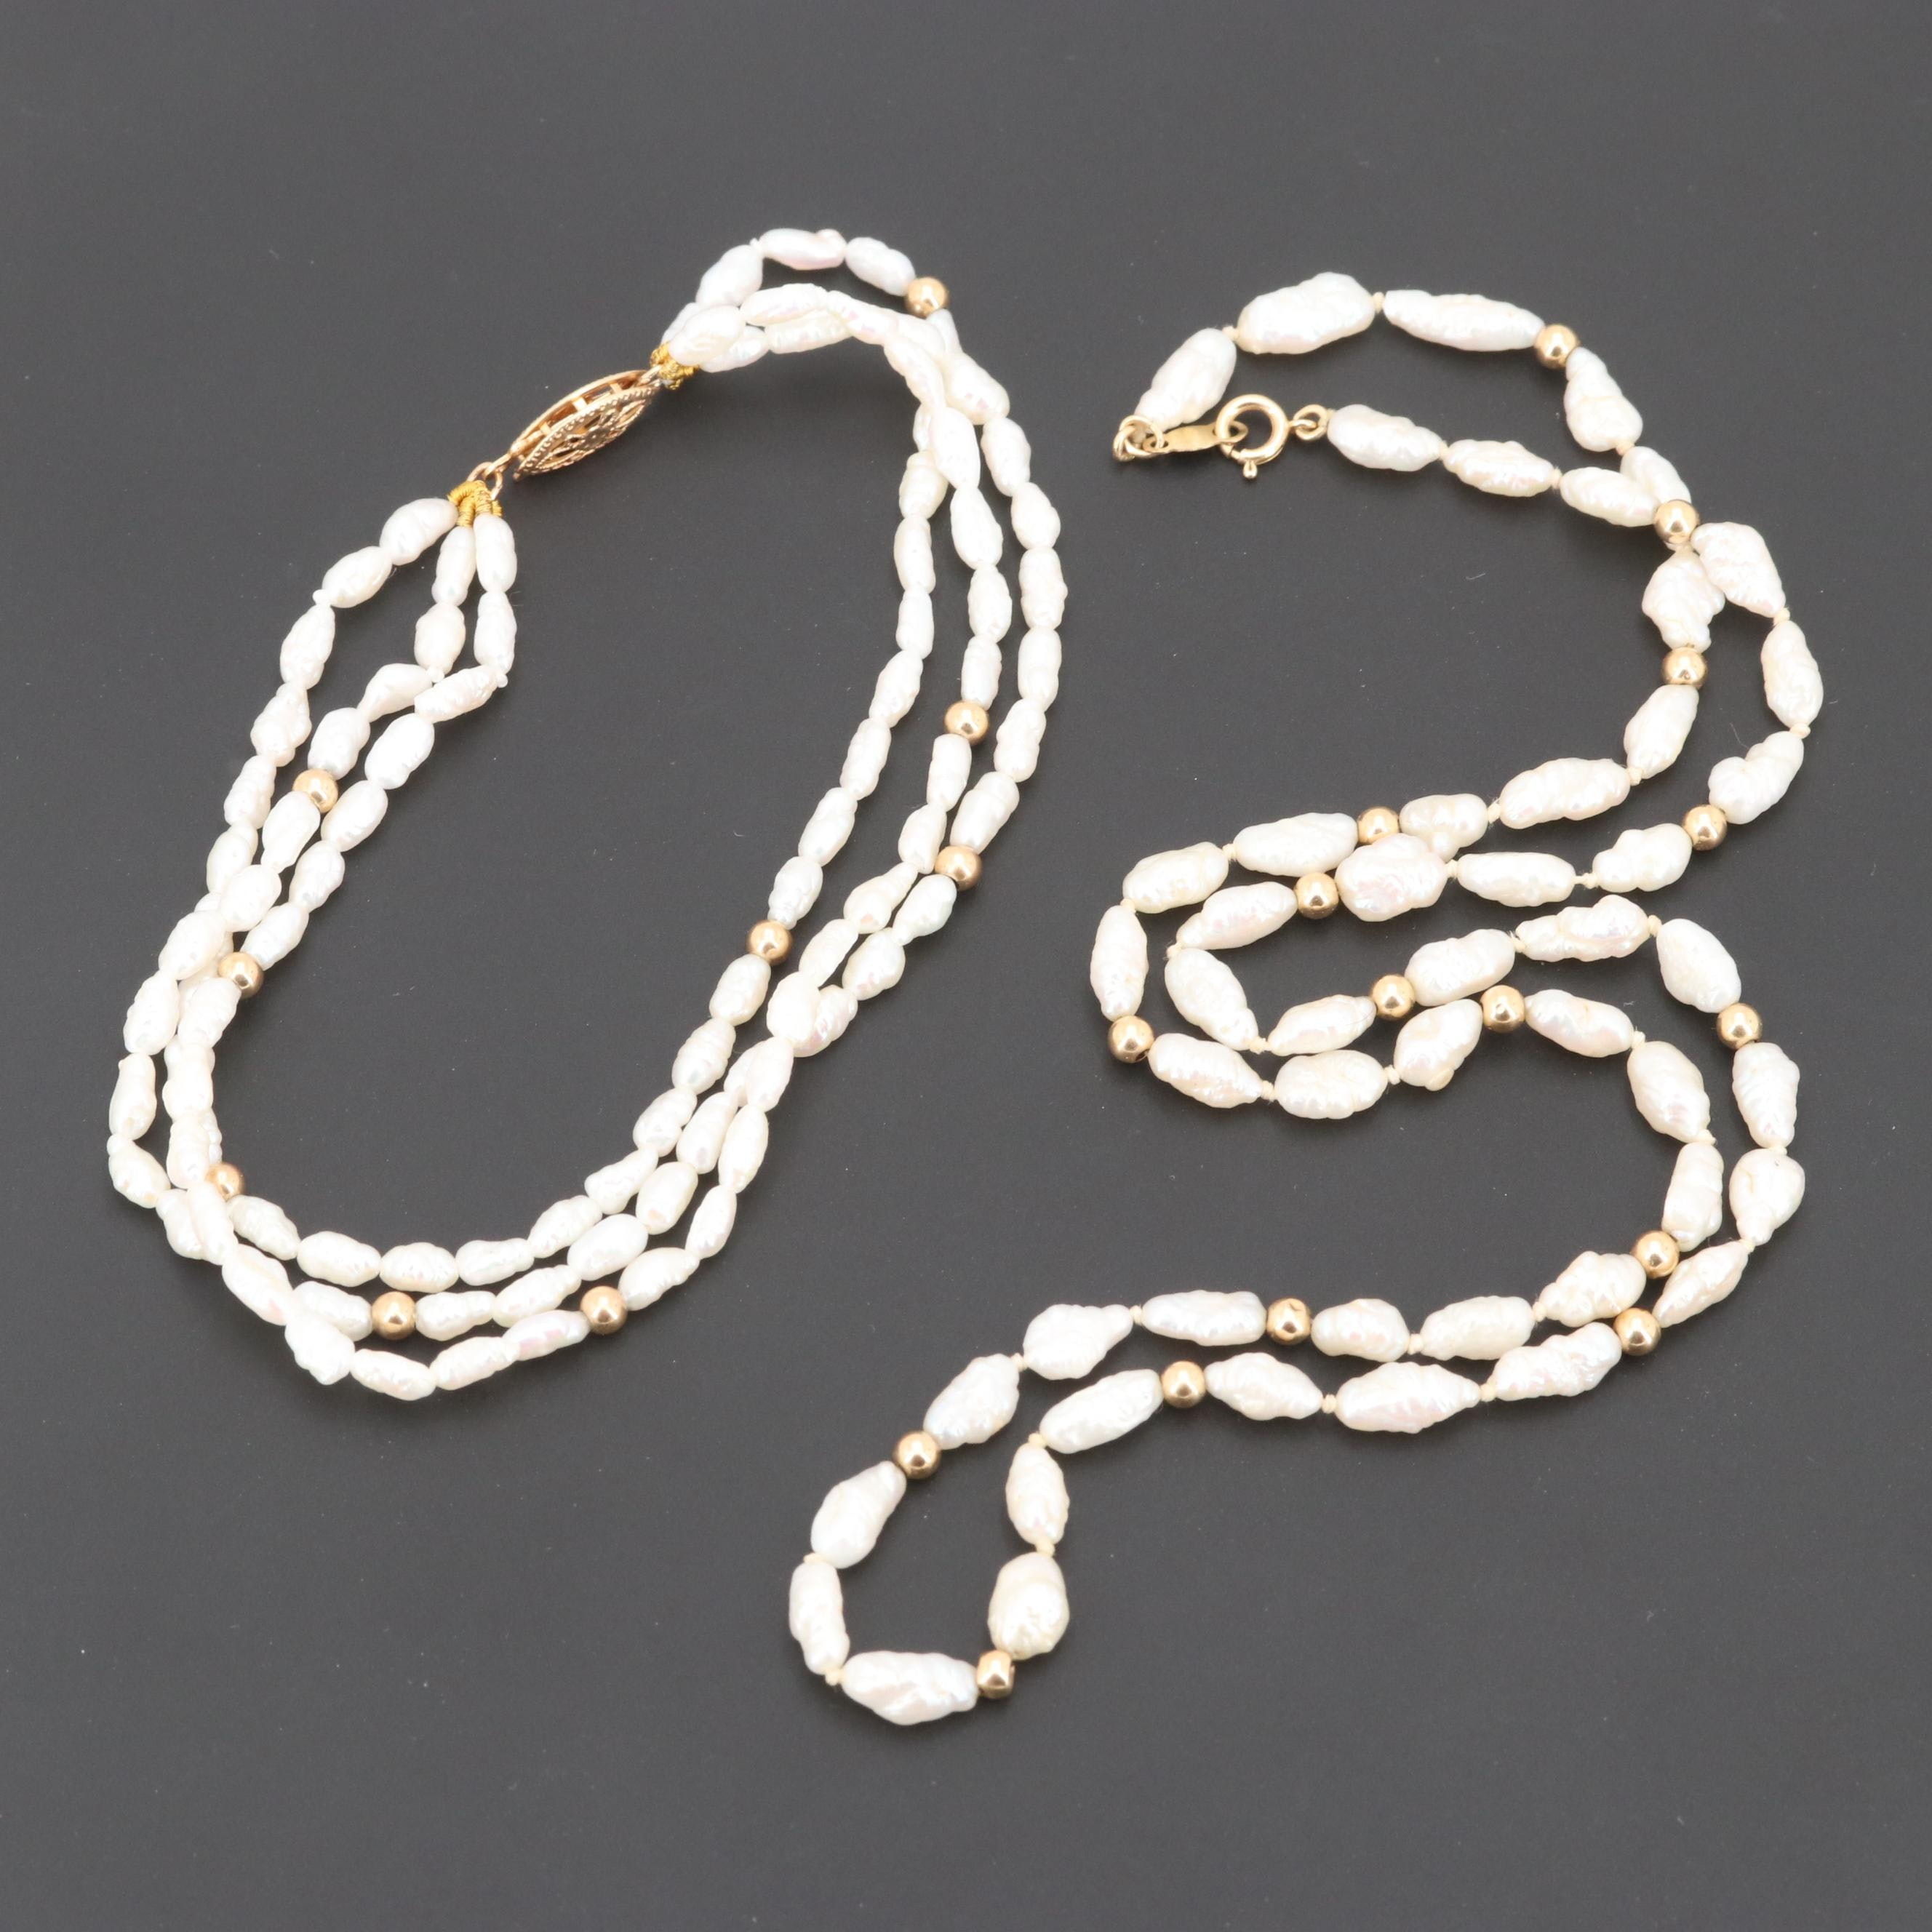 14K Yellow Gold Cultured Barrel Pearl Necklace and Bracelet